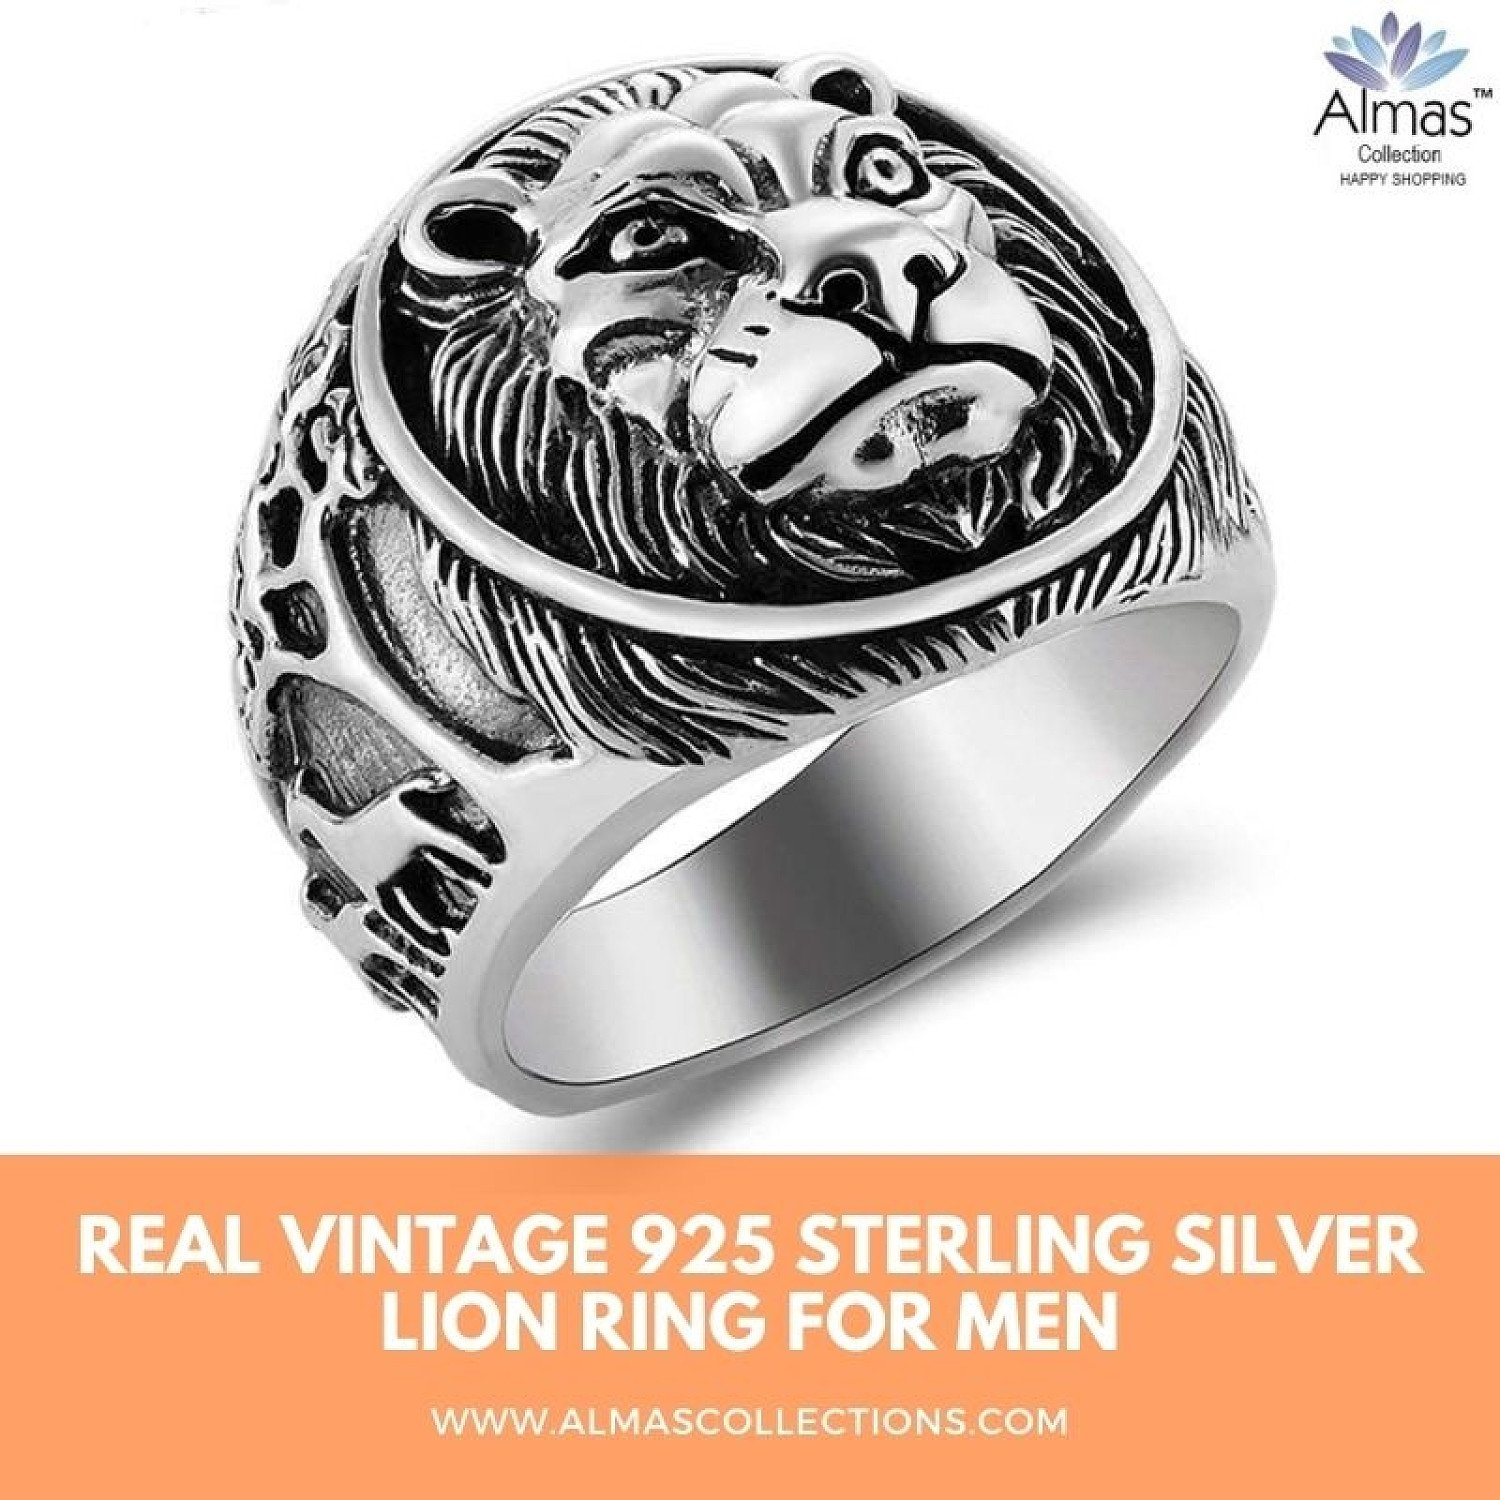 Real Vintage 925 Sterling Silver Lion Ring for Men by Almas Collections